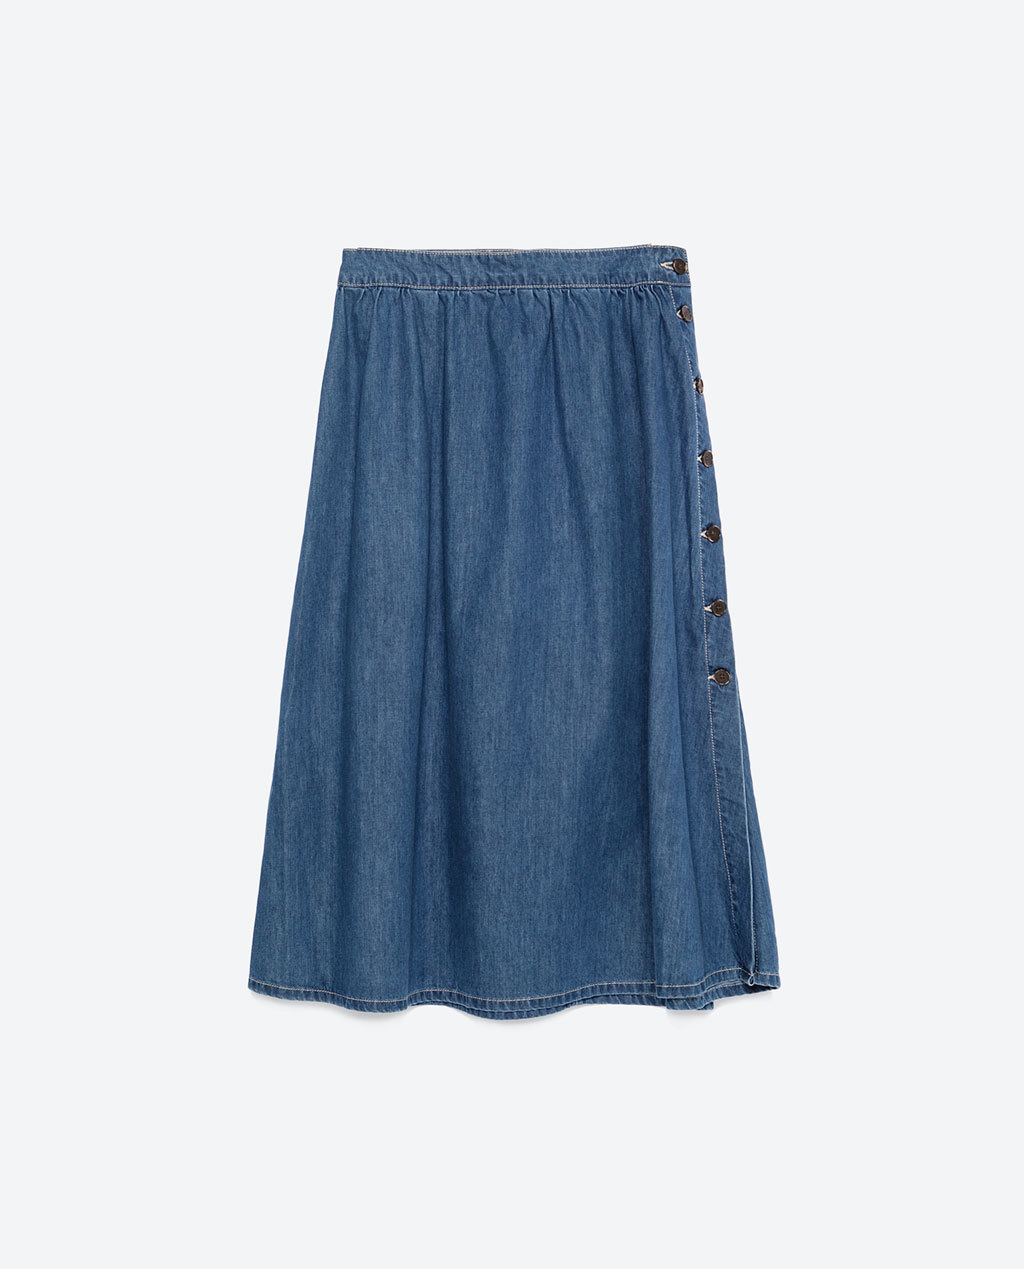 Flowing Denim Skirt - length: below the knee; pattern: plain; style: full/prom skirt; fit: loose/voluminous; waist: mid/regular rise; predominant colour: denim; occasions: casual, creative work; fibres: cotton - stretch; texture group: denim; pattern type: fabric; season: a/w 2015; wardrobe: basic